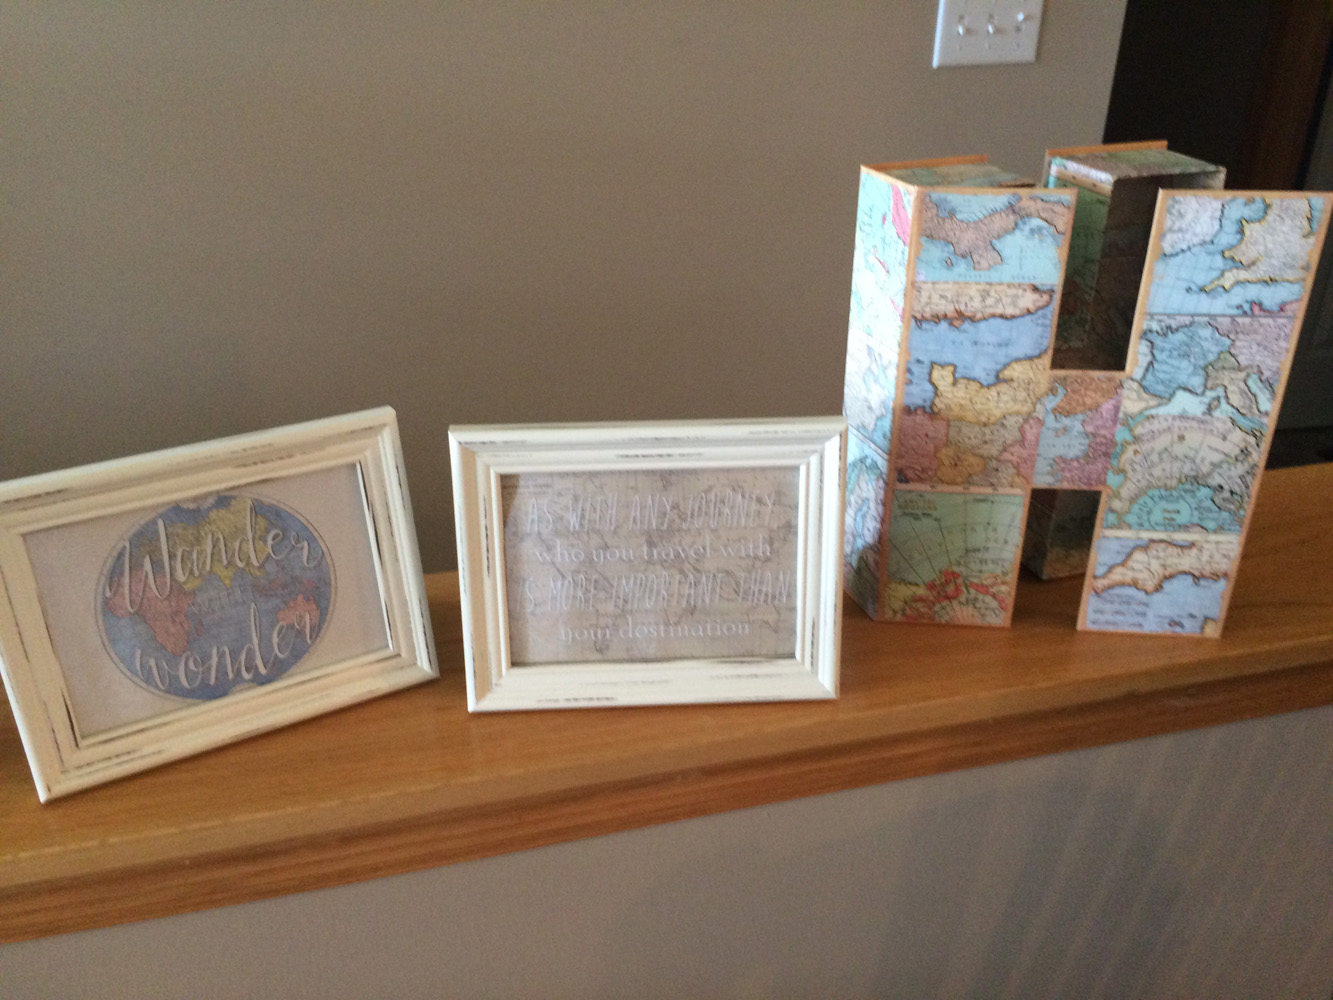 Framed travel sayings make easy decor for a travel themed bridal shower.